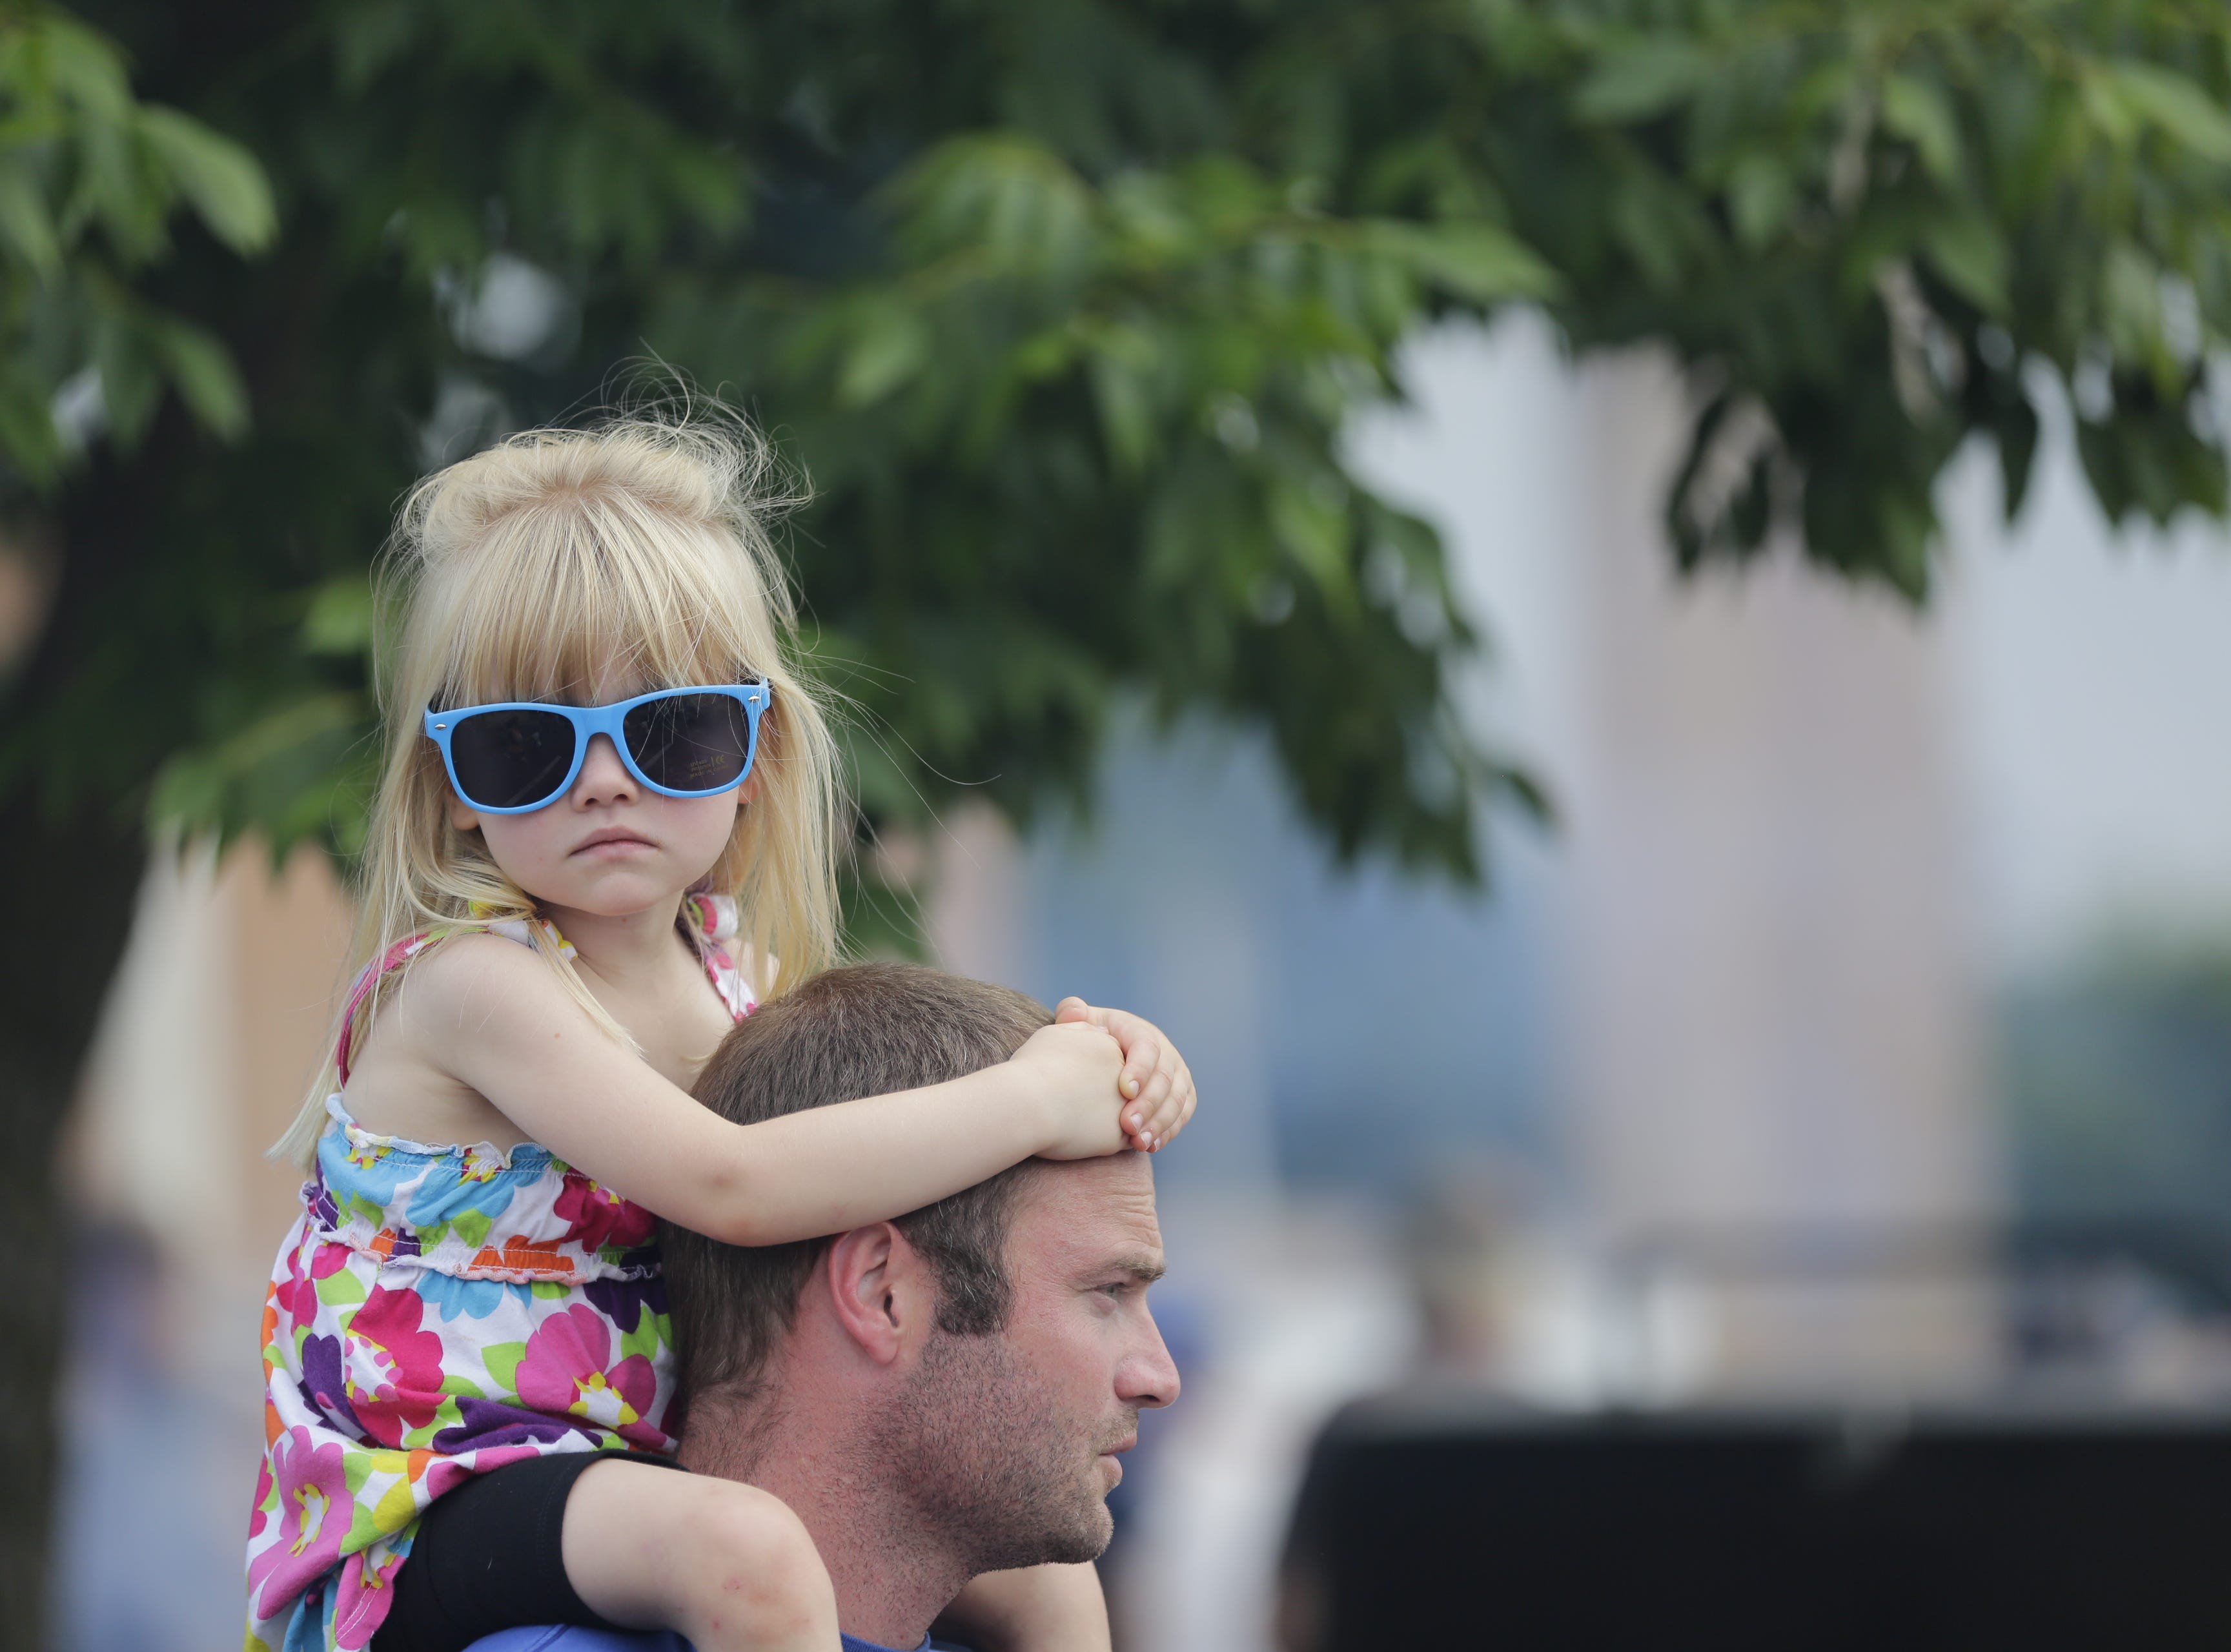 Hailey Hegg, 4, sits on the shoulders of her father Eric Hegg at the Wisconsin Rapids community picnic on First Avenue South and Johnson Street Wednesday, August 1, 2018.